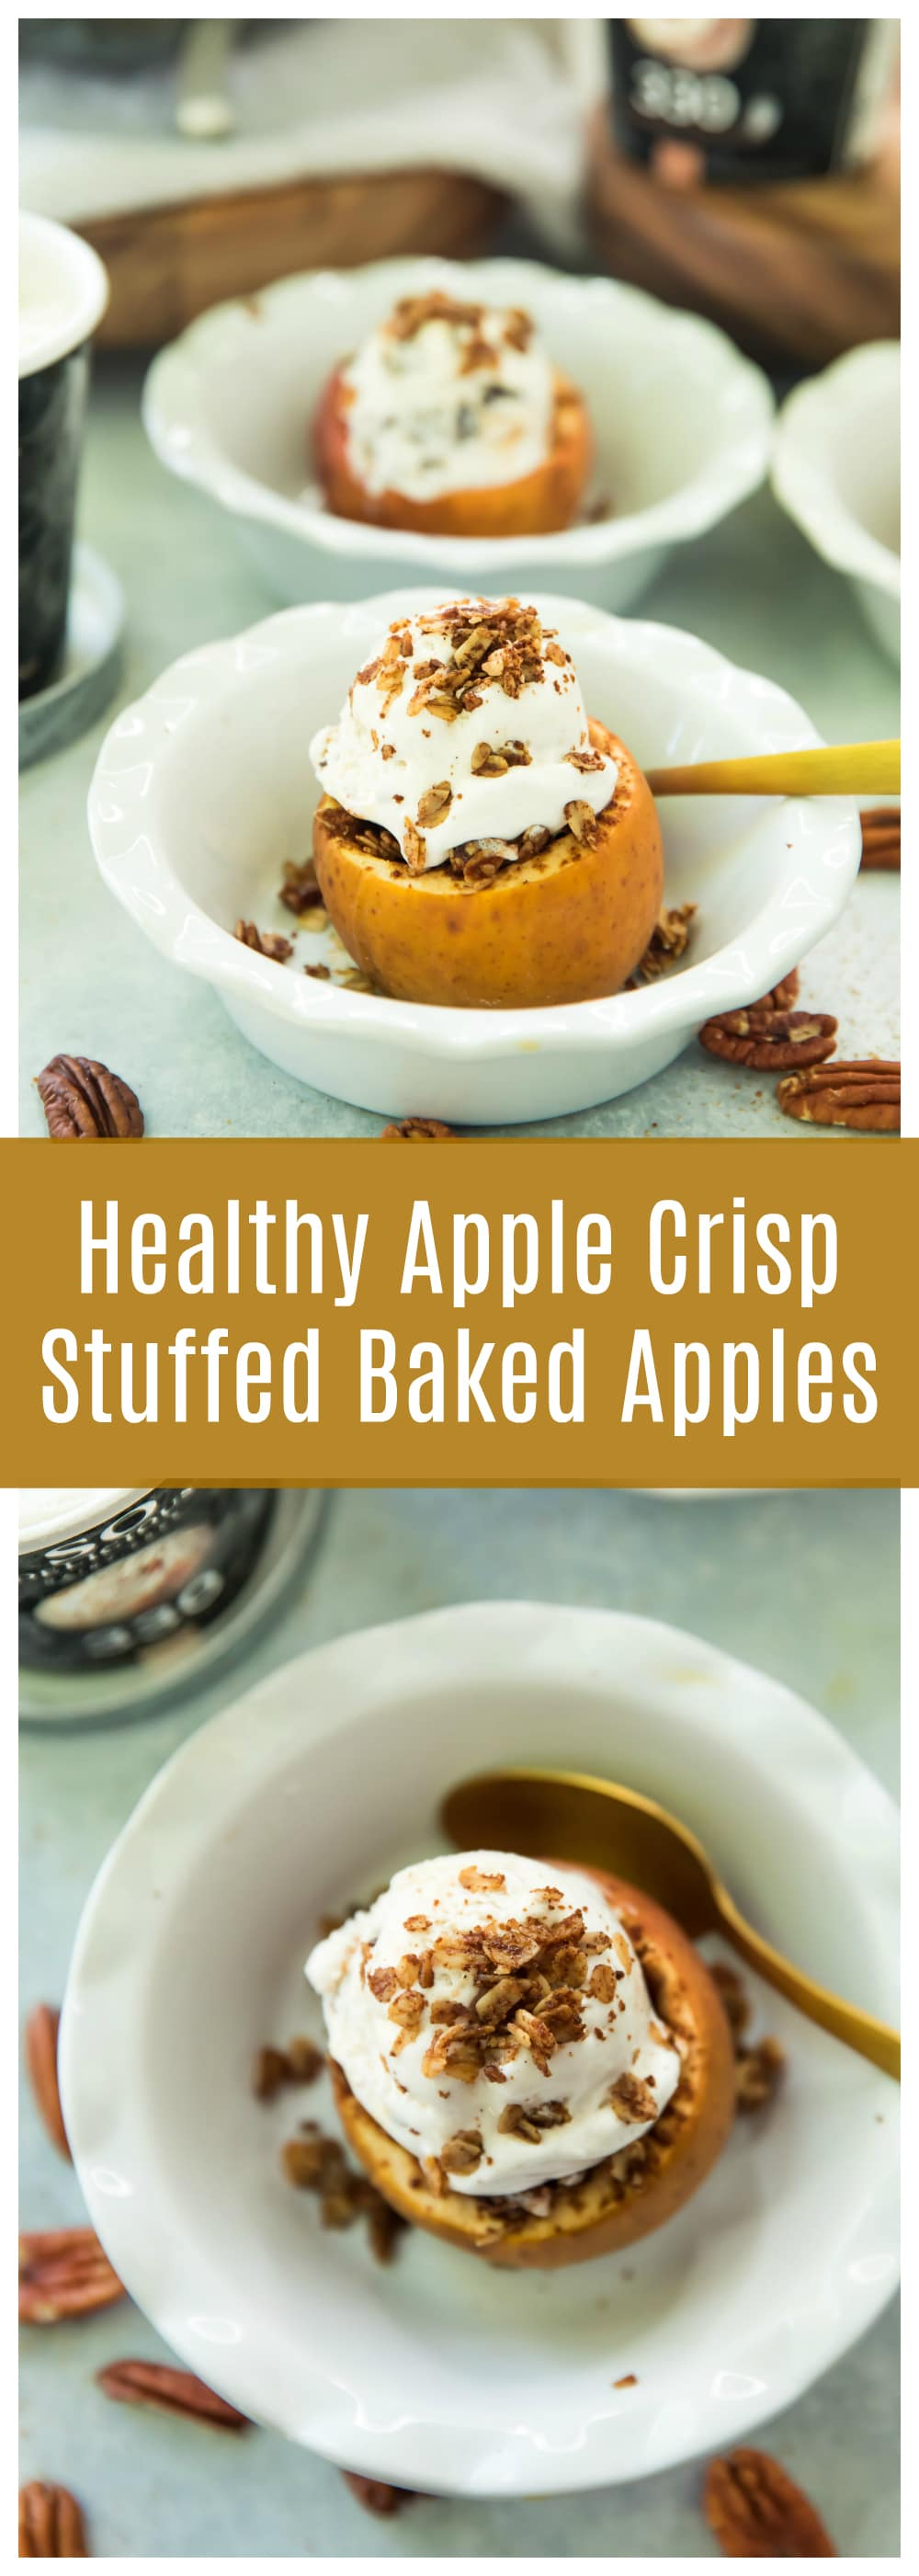 Let's add Healthy Apple Crisp Stuffed Baked Apples to that prized collection of sneaky recipes that look and feel super-duper special and five-star fancy, but are actually a great way to eat more dessert with minimal effort.